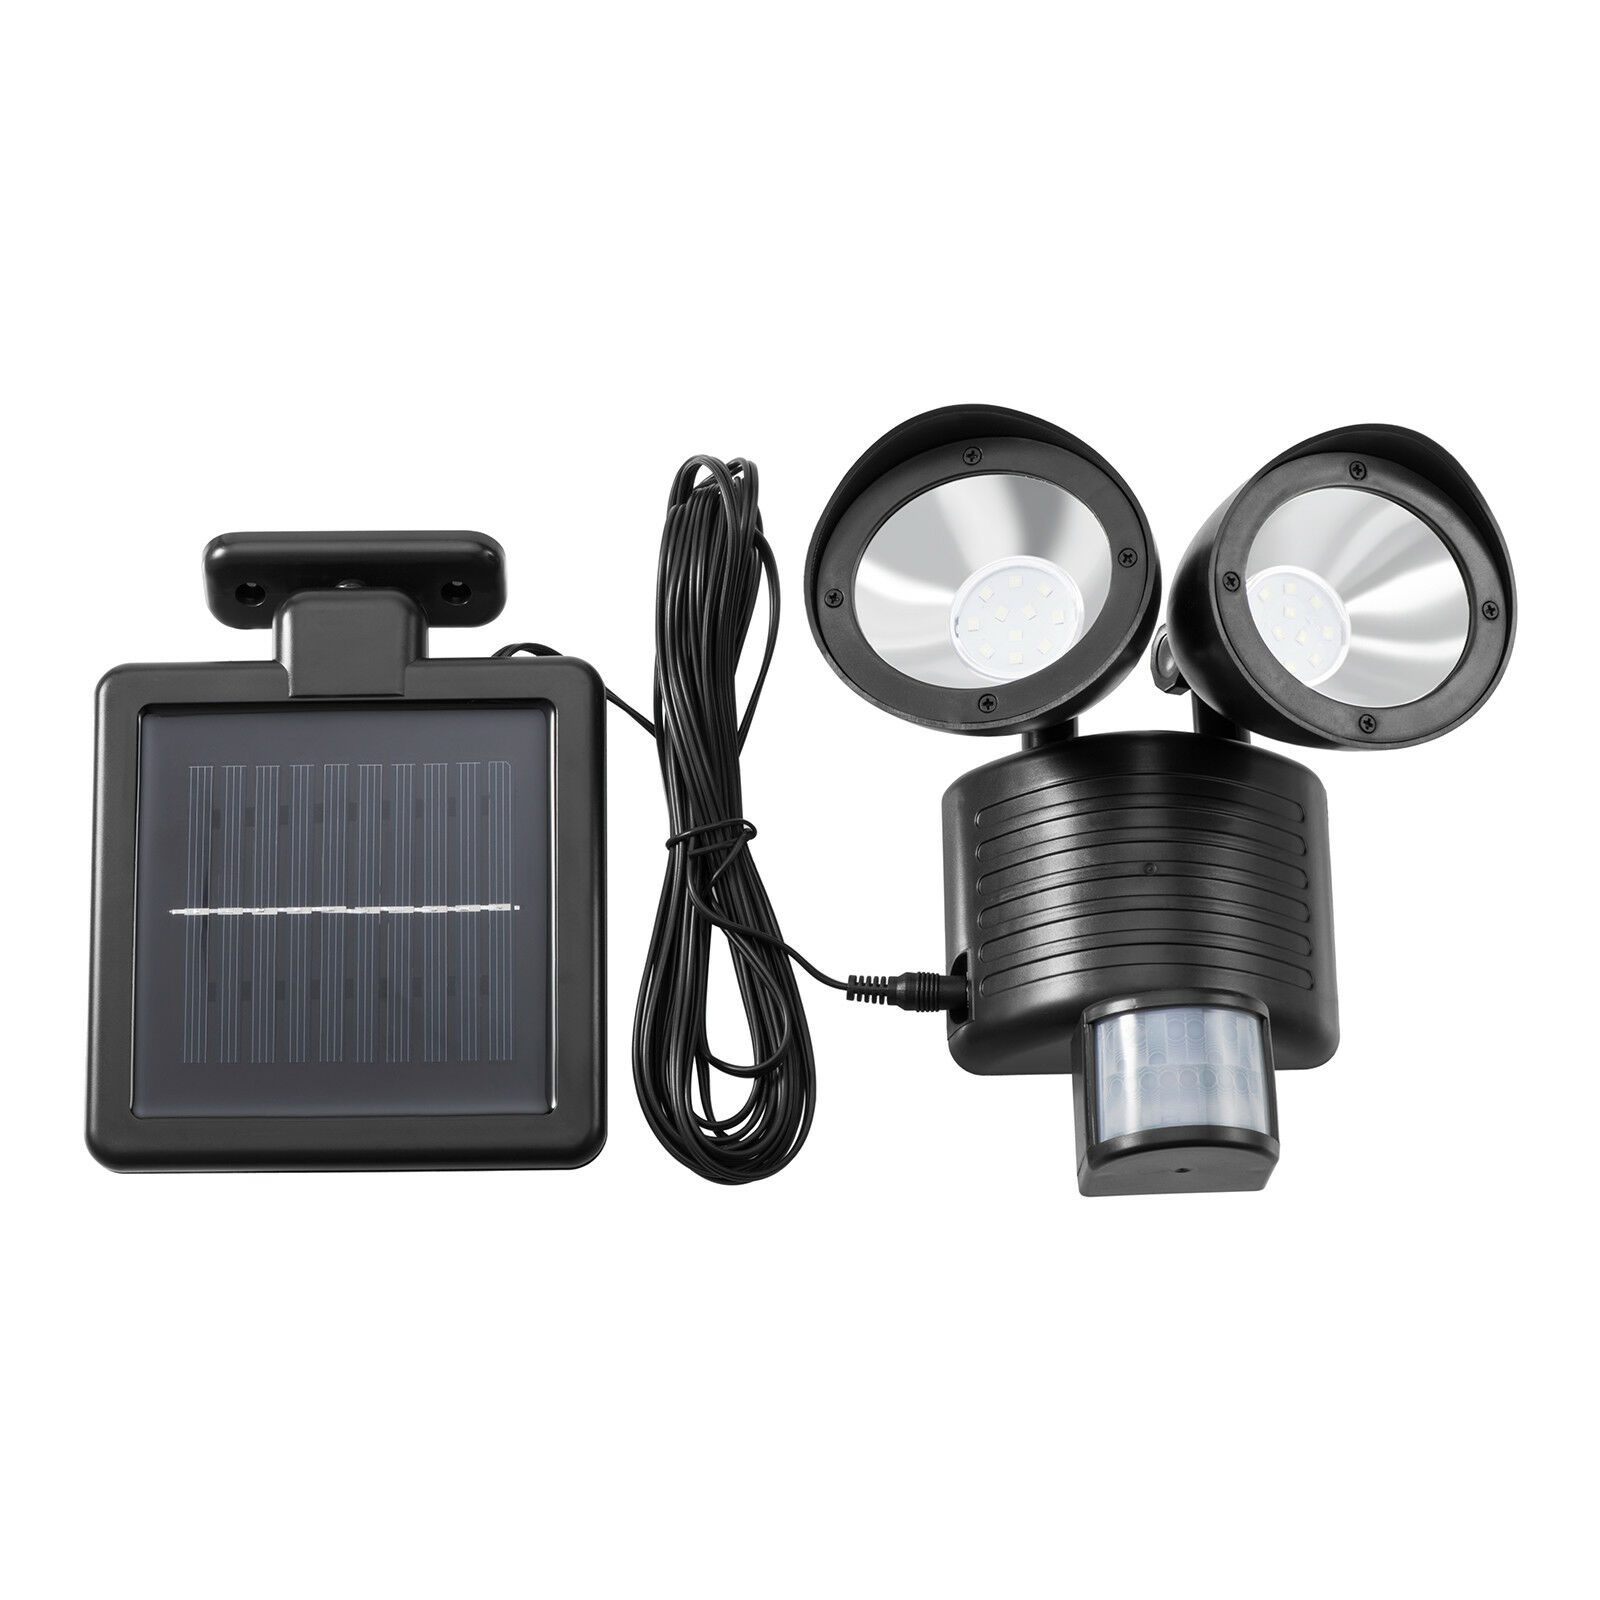 Details About Outdoor 22 Led Floodlight Dual Security Detector Solar Spot Light Motion Sensor